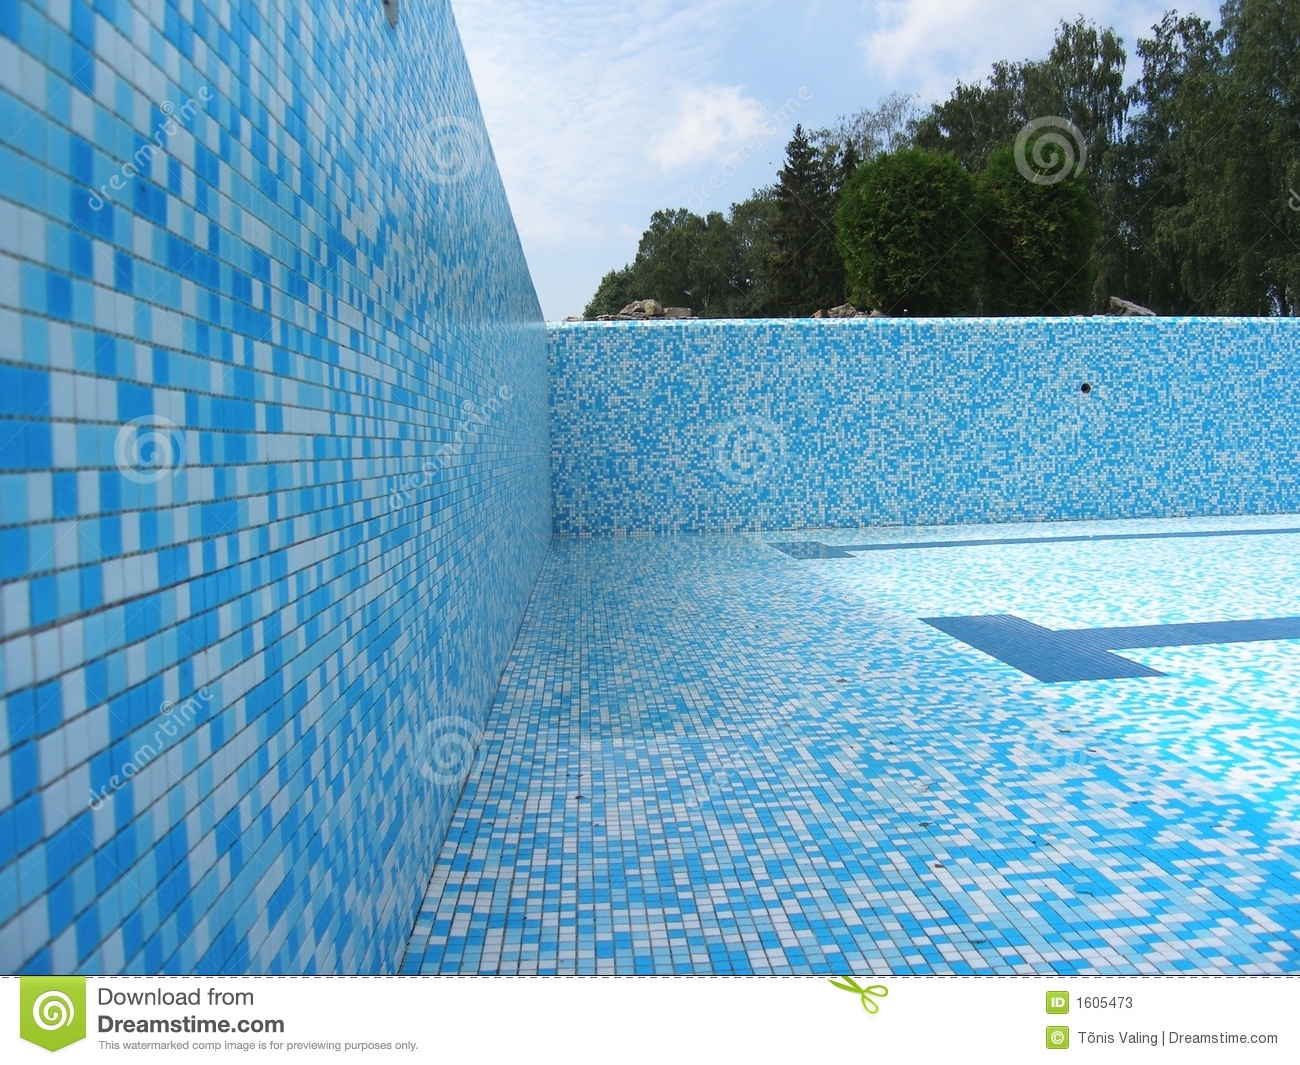 Swimming pool without water stock image image of surface blue 1605473 for How much water is in a swimming pool